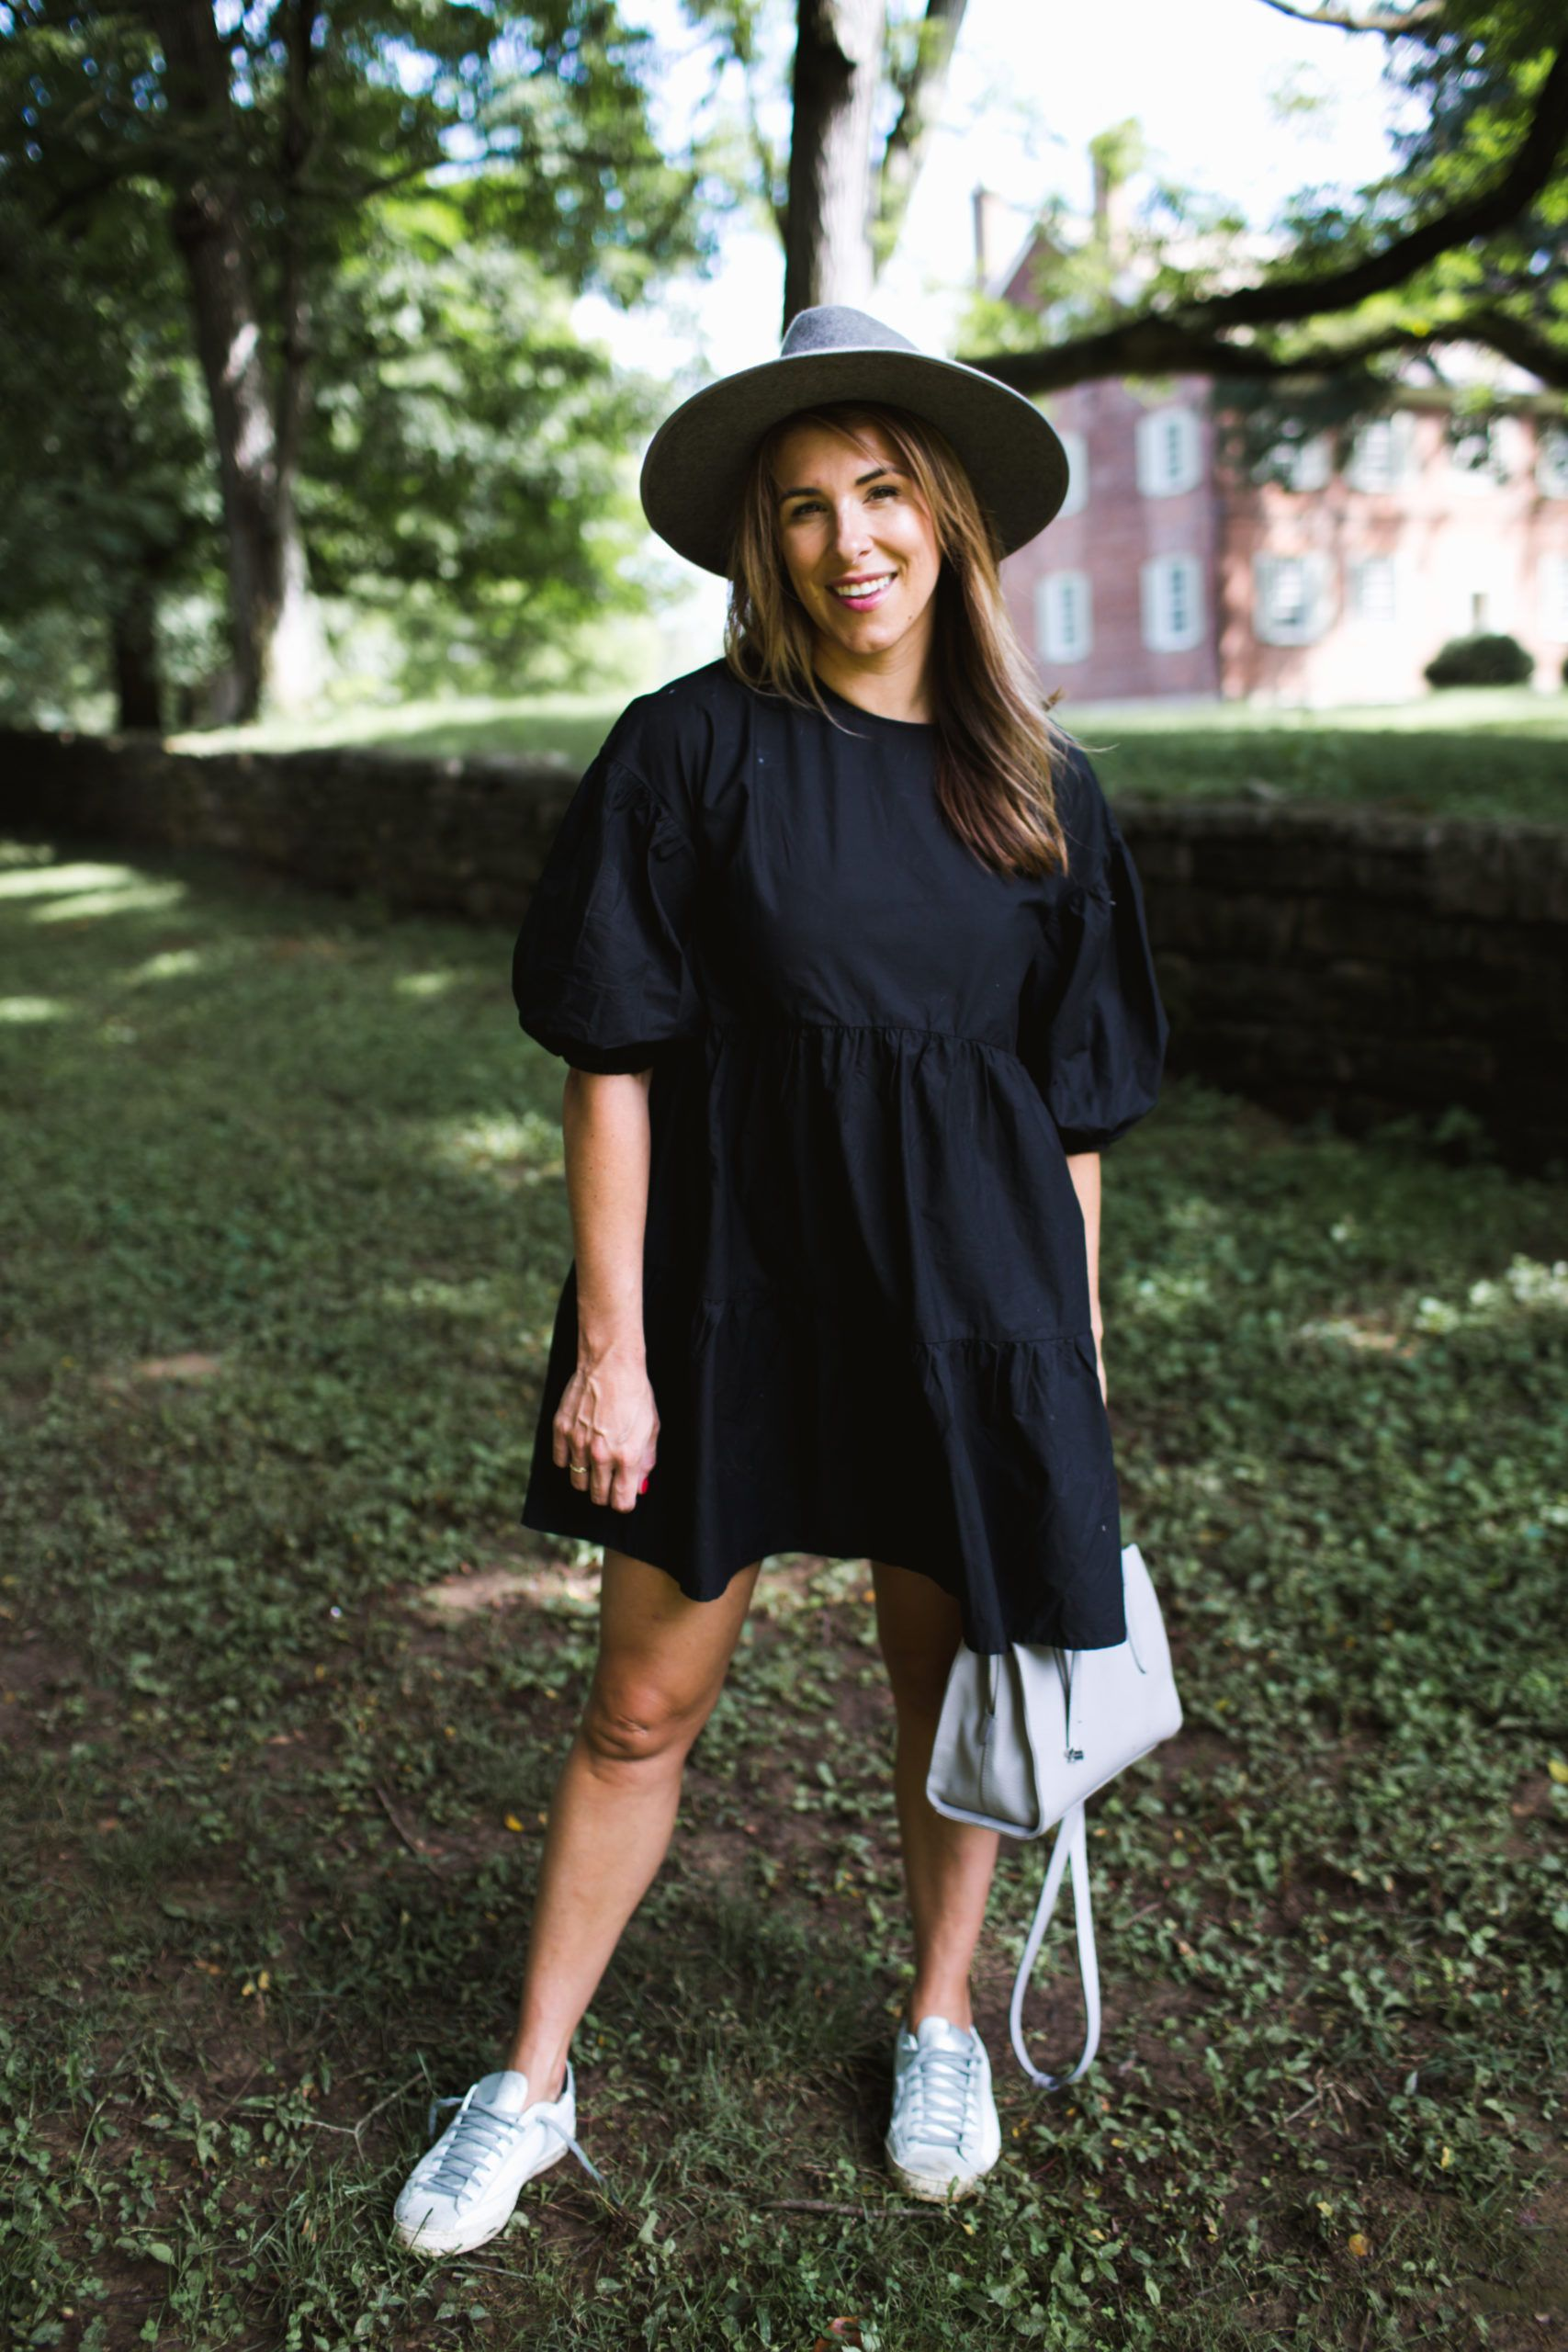 The 30 Dress To Take You From Summer To Fall Lou What Wear Wide Brim Hat Outfit Casual Fall Outfits Outfits With Hats [ 2560 x 1707 Pixel ]